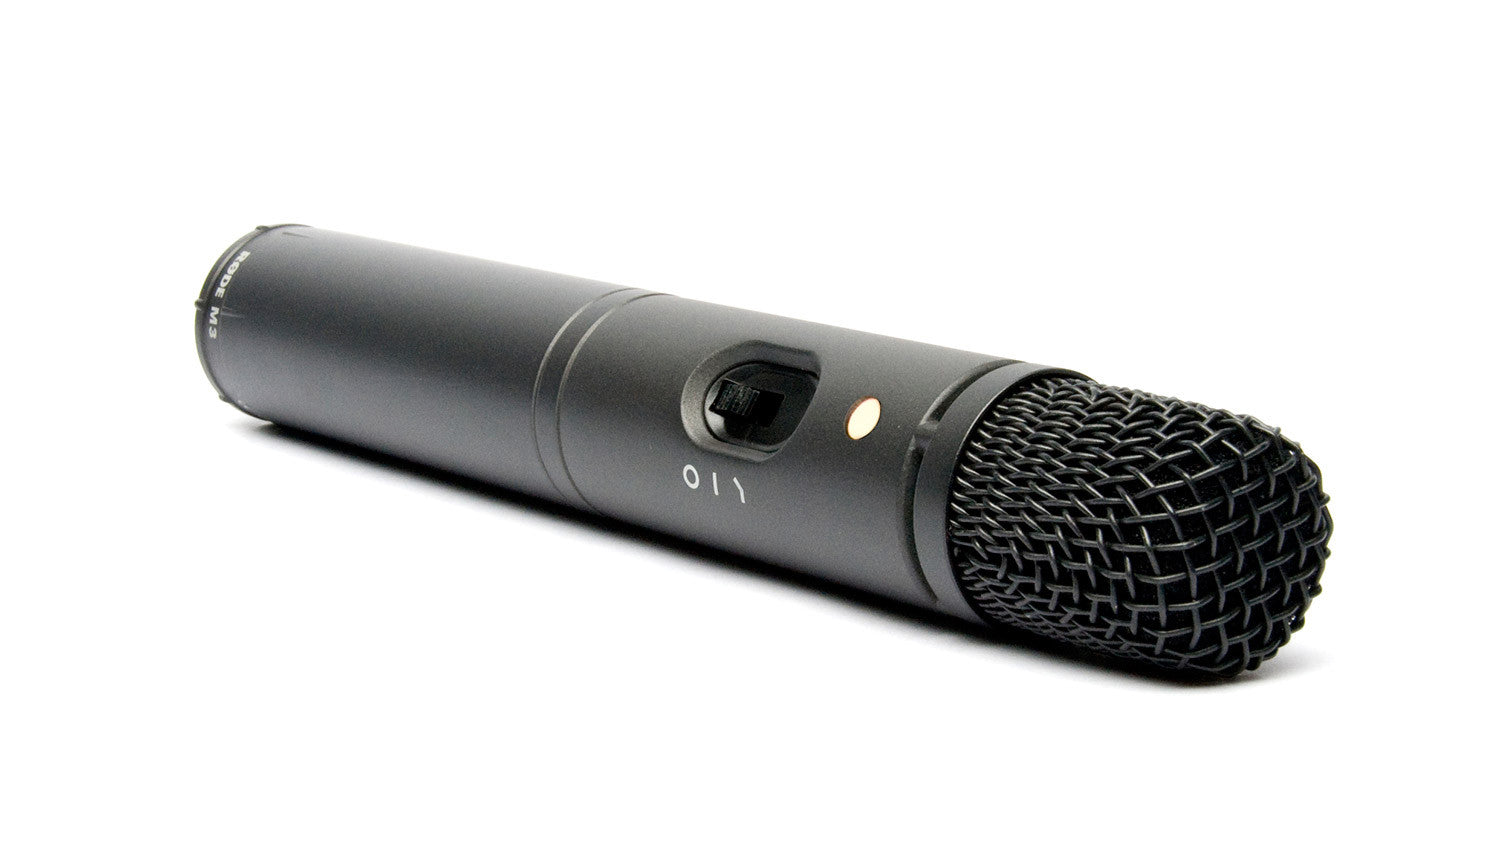 RODE M3 Multi-Powered Cardioid Condenser Microphone - Audio - RØDE - Helix Camera